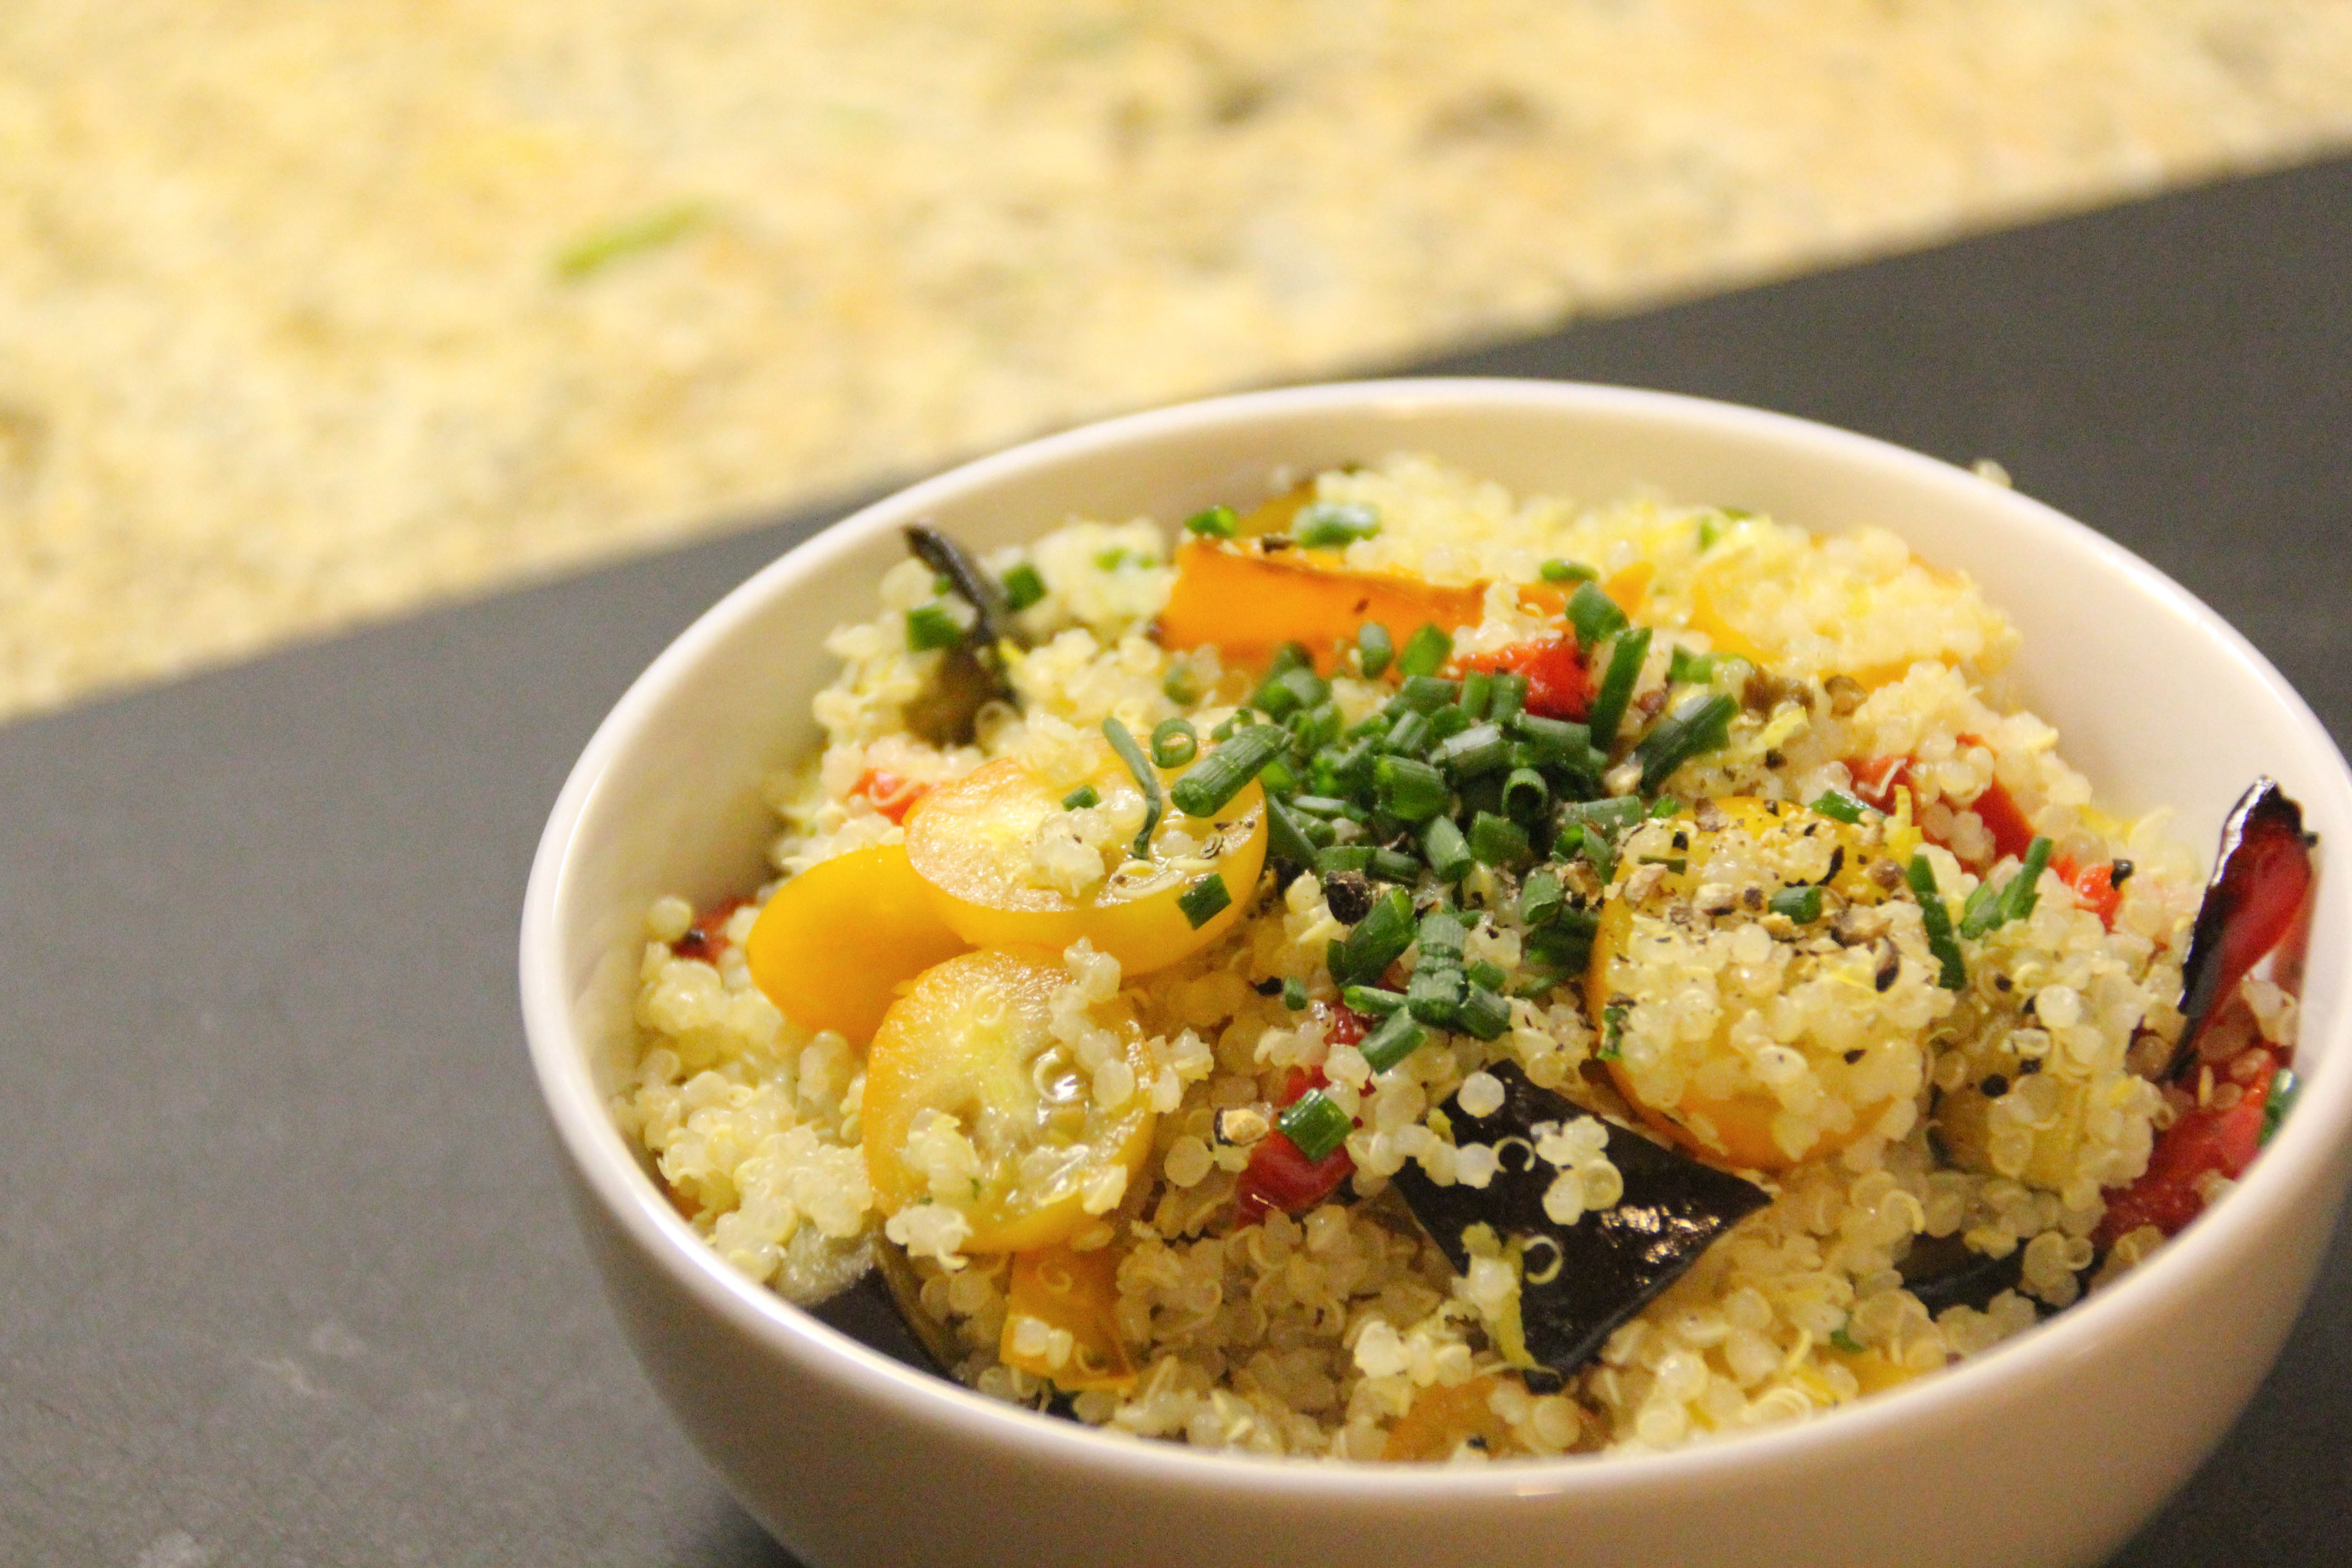 ... bad: lemony quinoa salad with roasted vegetables | E A T & R E L I S H